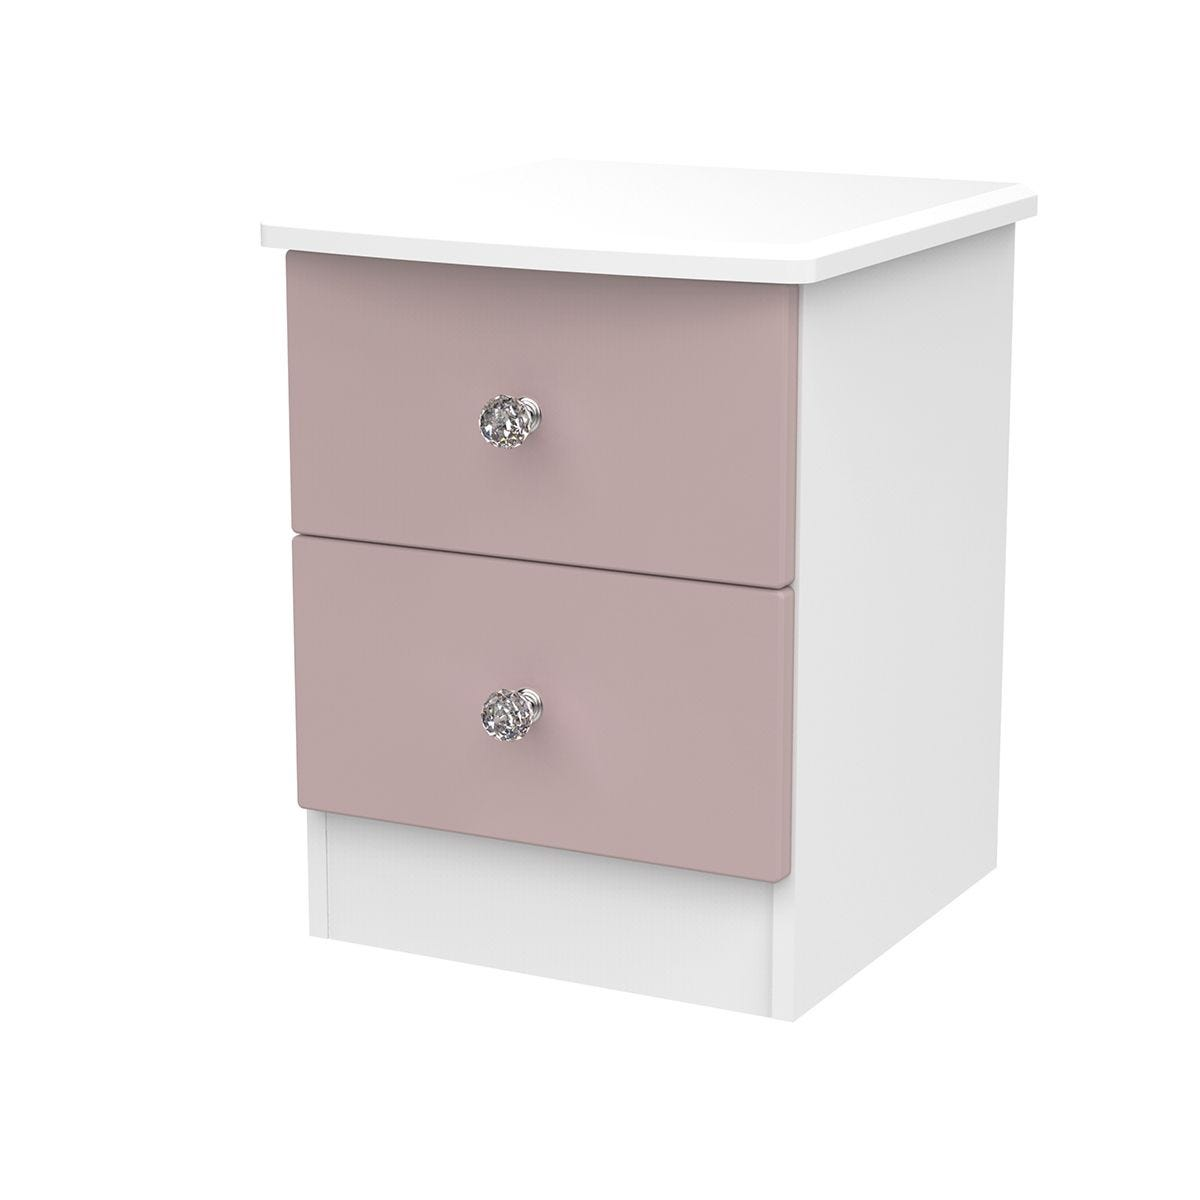 Tedesca 2-Drawer Bedside Table - Pink